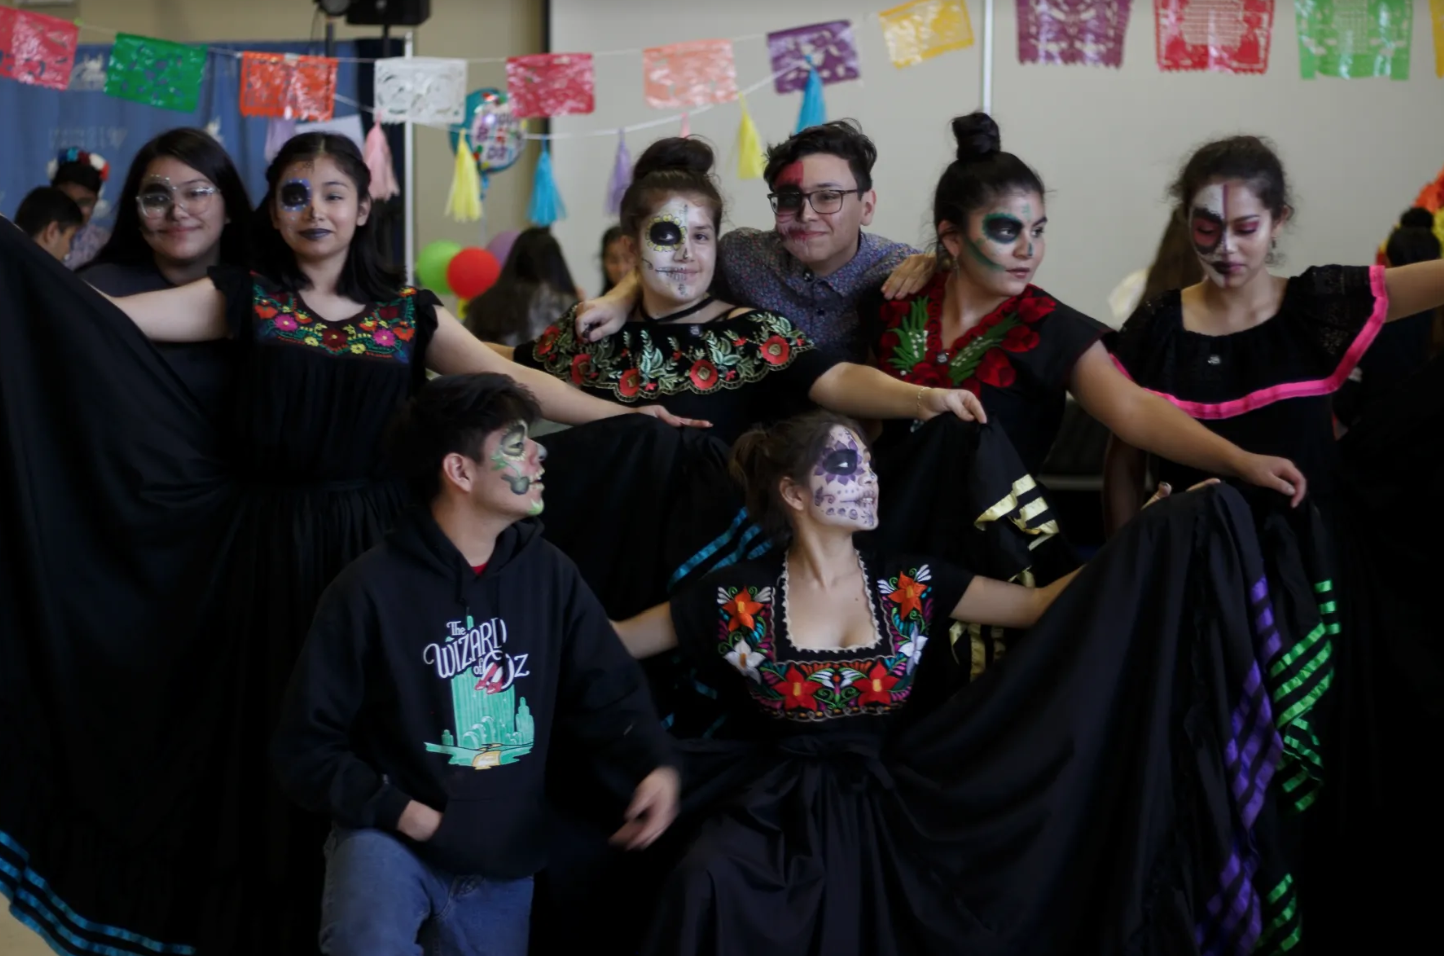 For the first time in the event's history, students in intricate costumes and artfully paint- ed faces participated in Mescalito, an energetic Wahakan-style dance that originated in  Oaxaca, Mexico, to Spanish songs by popular Mexican singer Lila Downs.